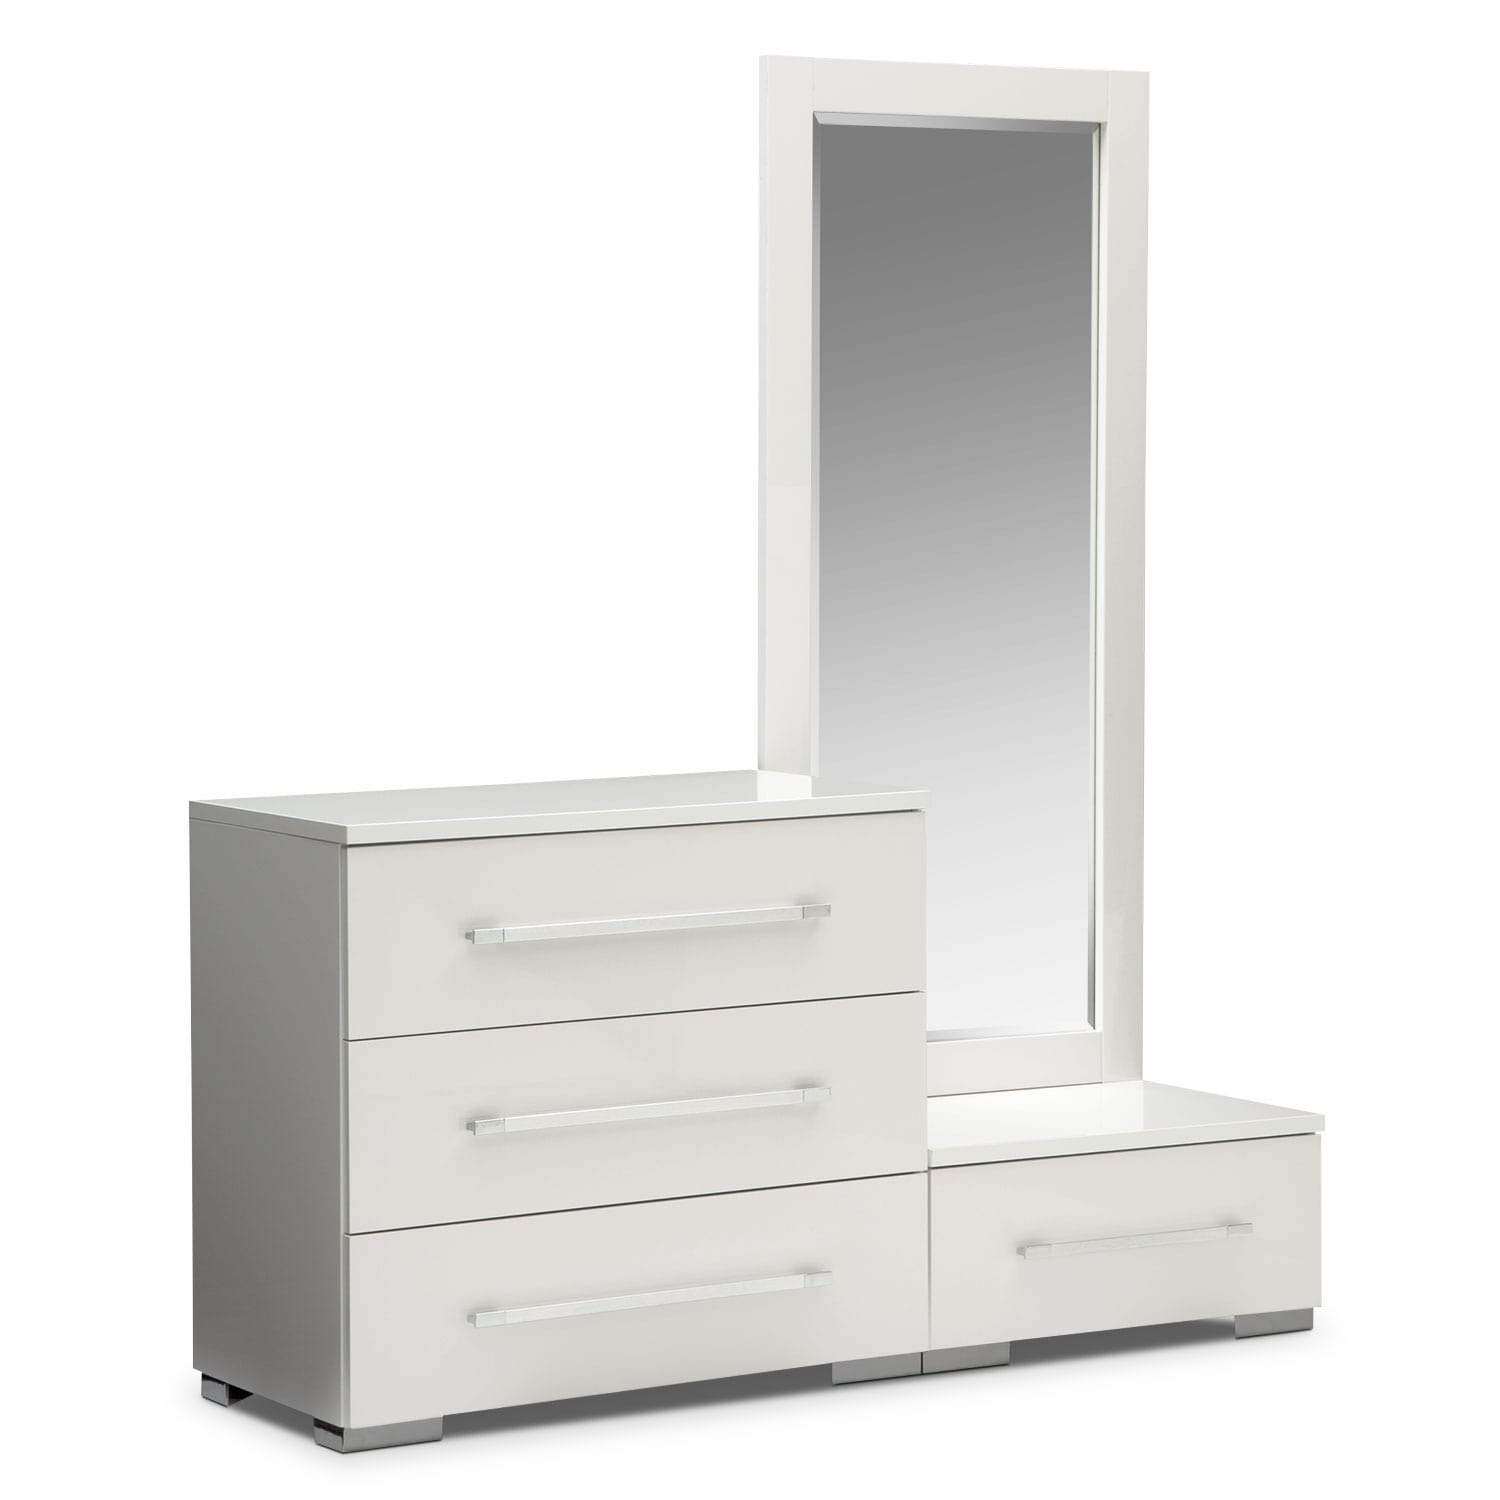 Bedroom Furniture - Dimora White Dressing Dresser & Dressing Mirror with Step